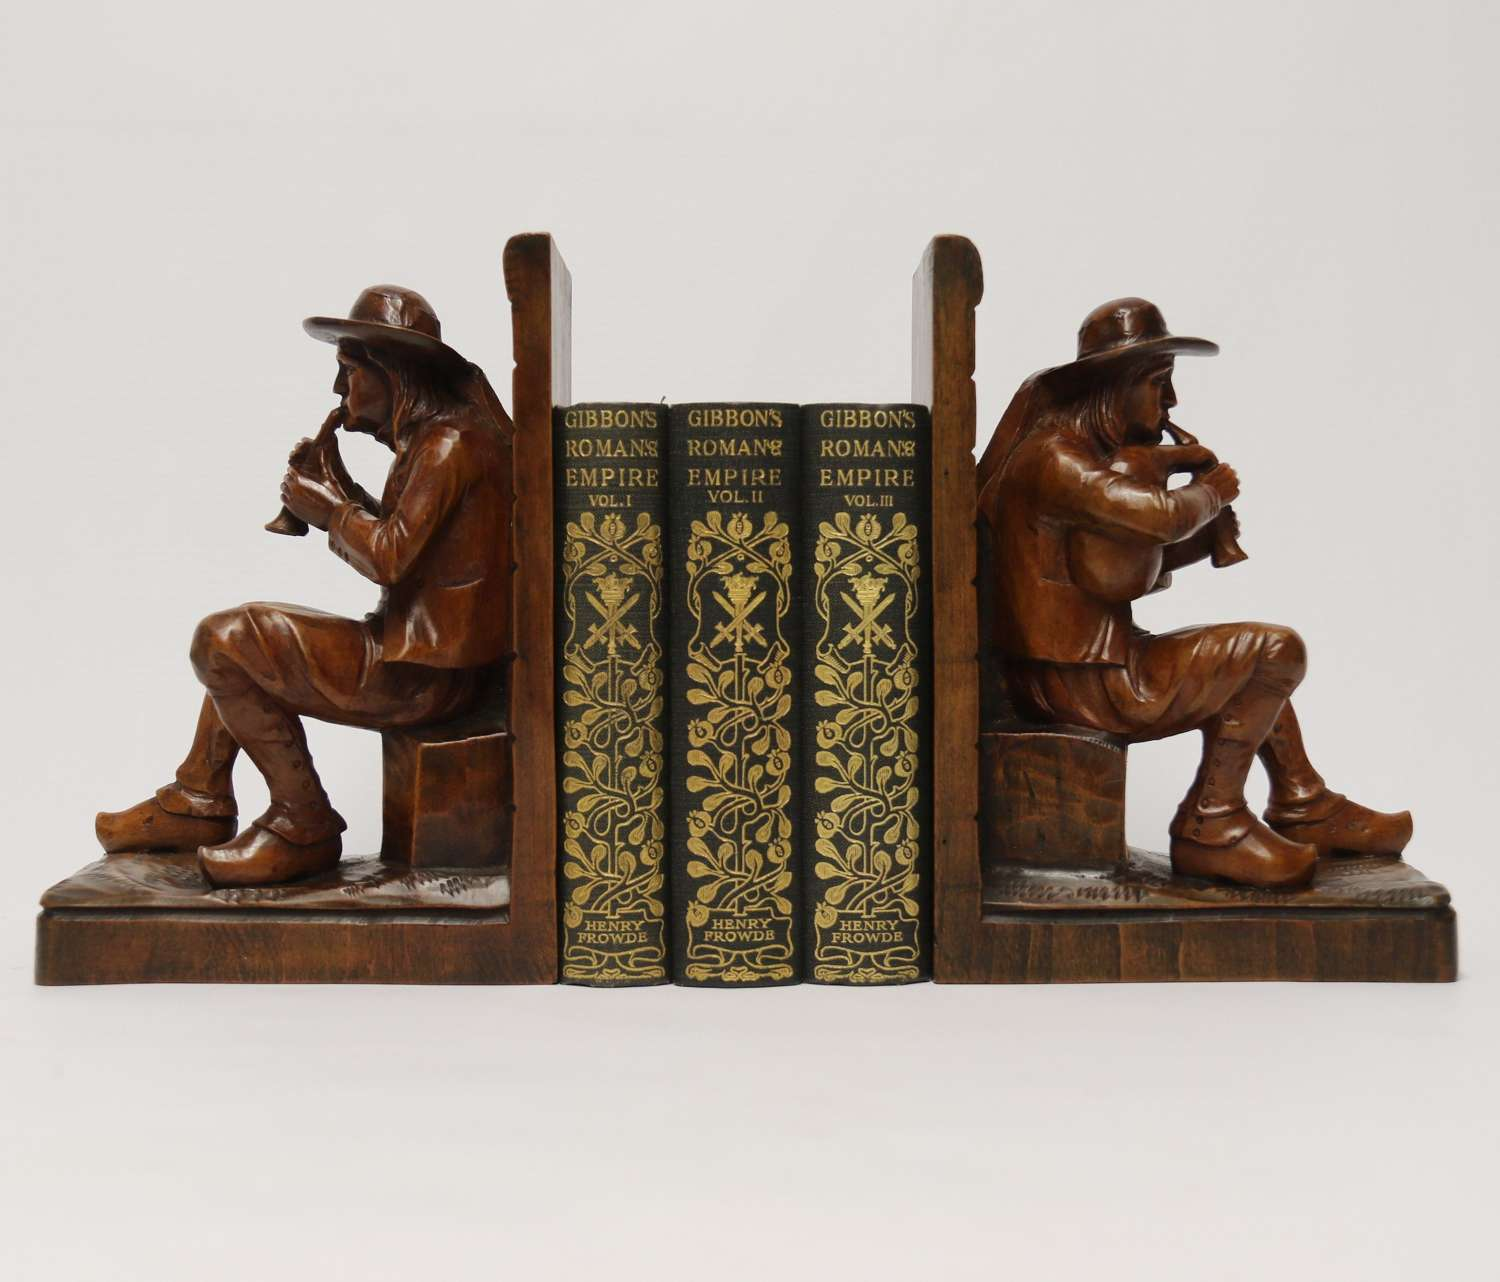 A fine pair of Black Forest carved walnut bookends, circa 1900